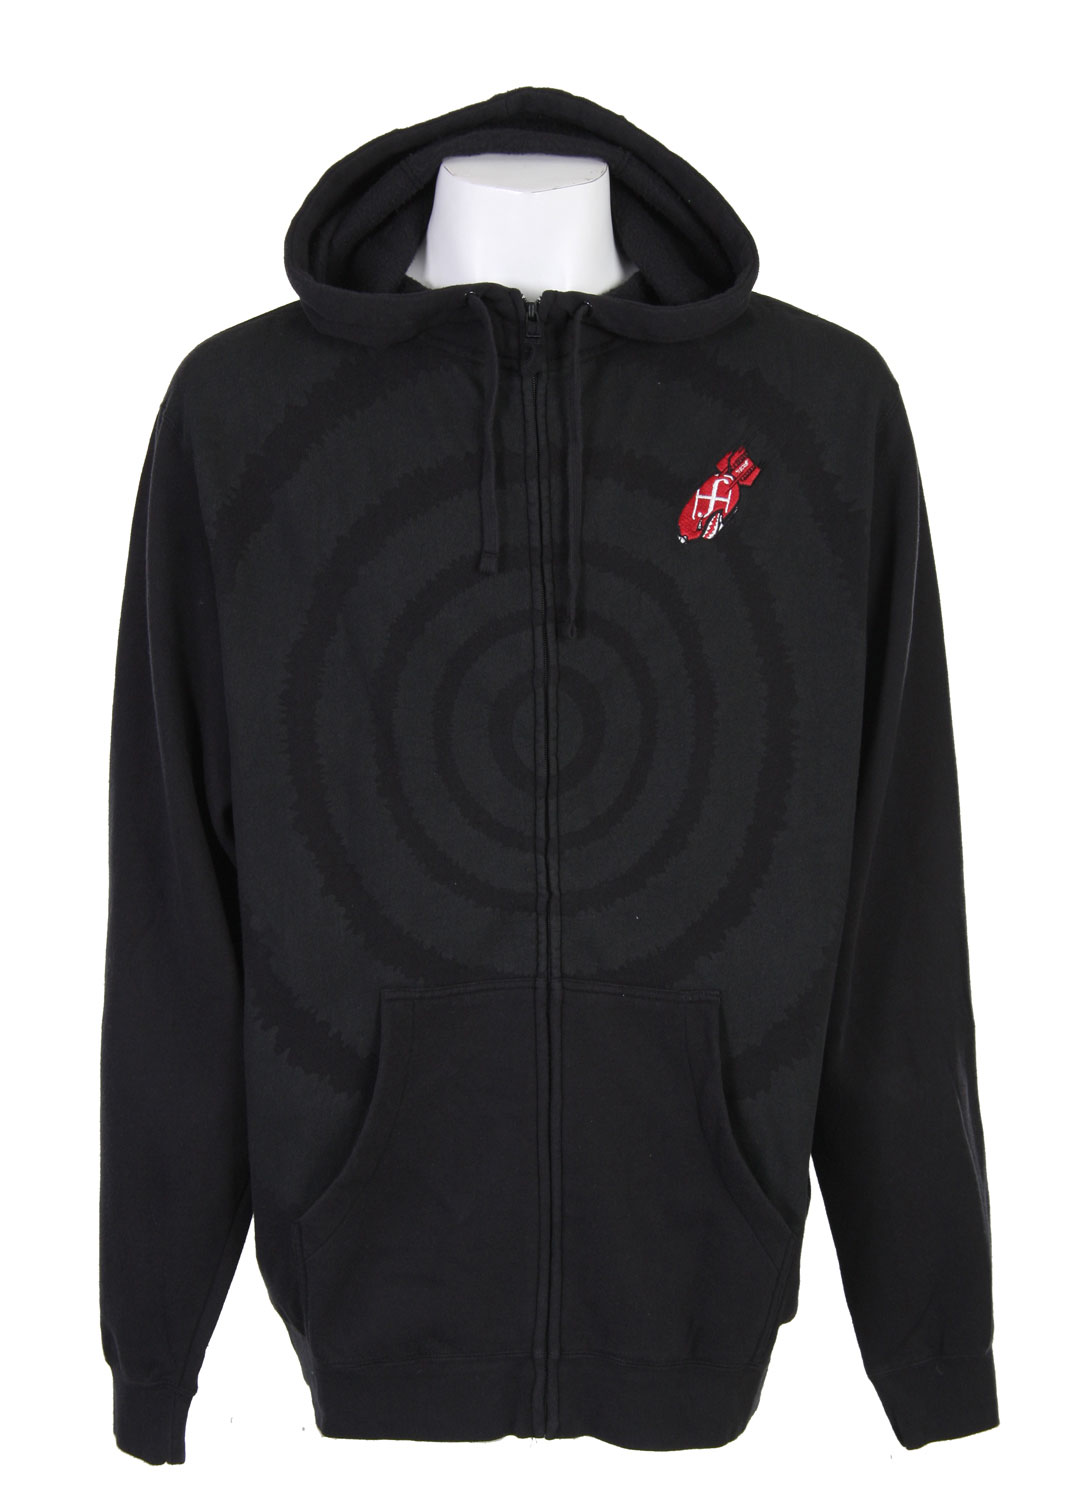 Feel like you always have a target on your chest? Well with this Forum Target Hoodie you actually will. You will have a giant target on your chest, it won't be nothing your not used to. The design is simple and that's what makes it so good looking, it's not to edgy and crazy. It conveniently zips up so you don't have to worry about pulling the sweater over your head all the time and messing up your perfect hair. It offers a ton of warmth in a small package and will have you prepared for those lack luster nights out on the lake or by the campfire.Key Features of The Forum Target Hoodie: Zip hooded sweatshirt 80% Cotton 20% Polyester Regular fit Stone washed High collar sweatshirt Chest embroidery Hidden mp3 pocket - $27.95